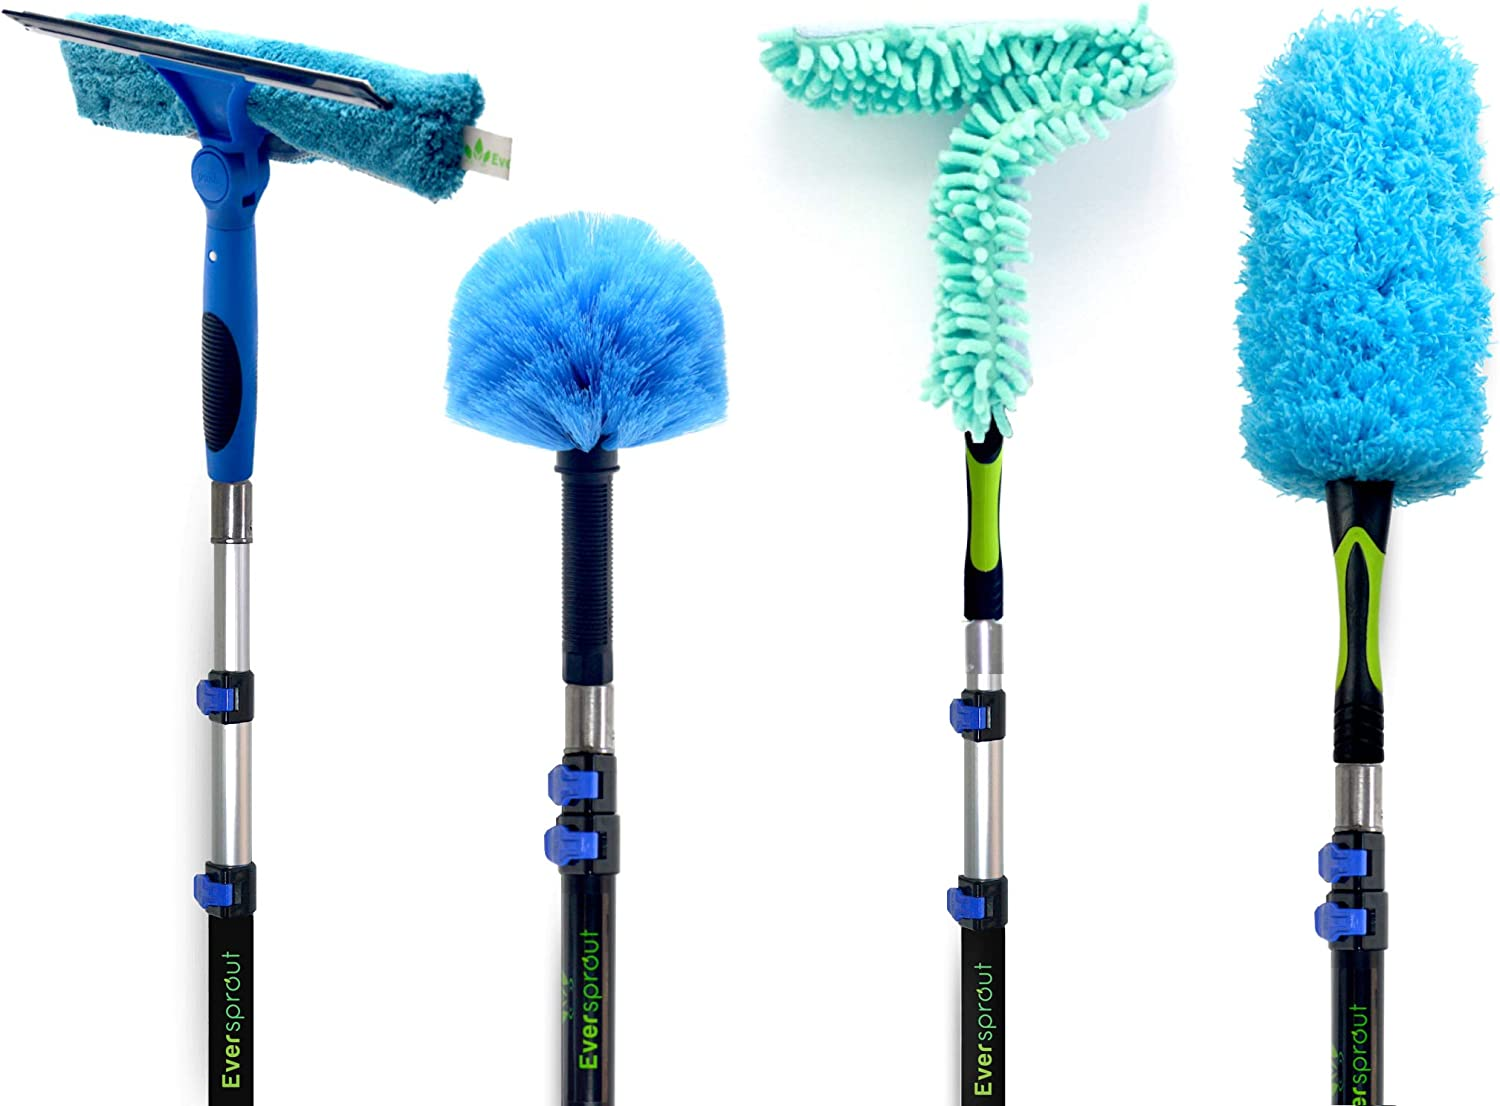 EVERSPROUT 1.5-to-4.5 Foot Duster Squeegee 4-Pack Kit with Extension Pole | Swivel Squeegee, Hand-Packaged Cobweb Duster, Microfiber Feather Duster, Flexible Ceiling Fan Duster, 3 Ft Telescopic Pole